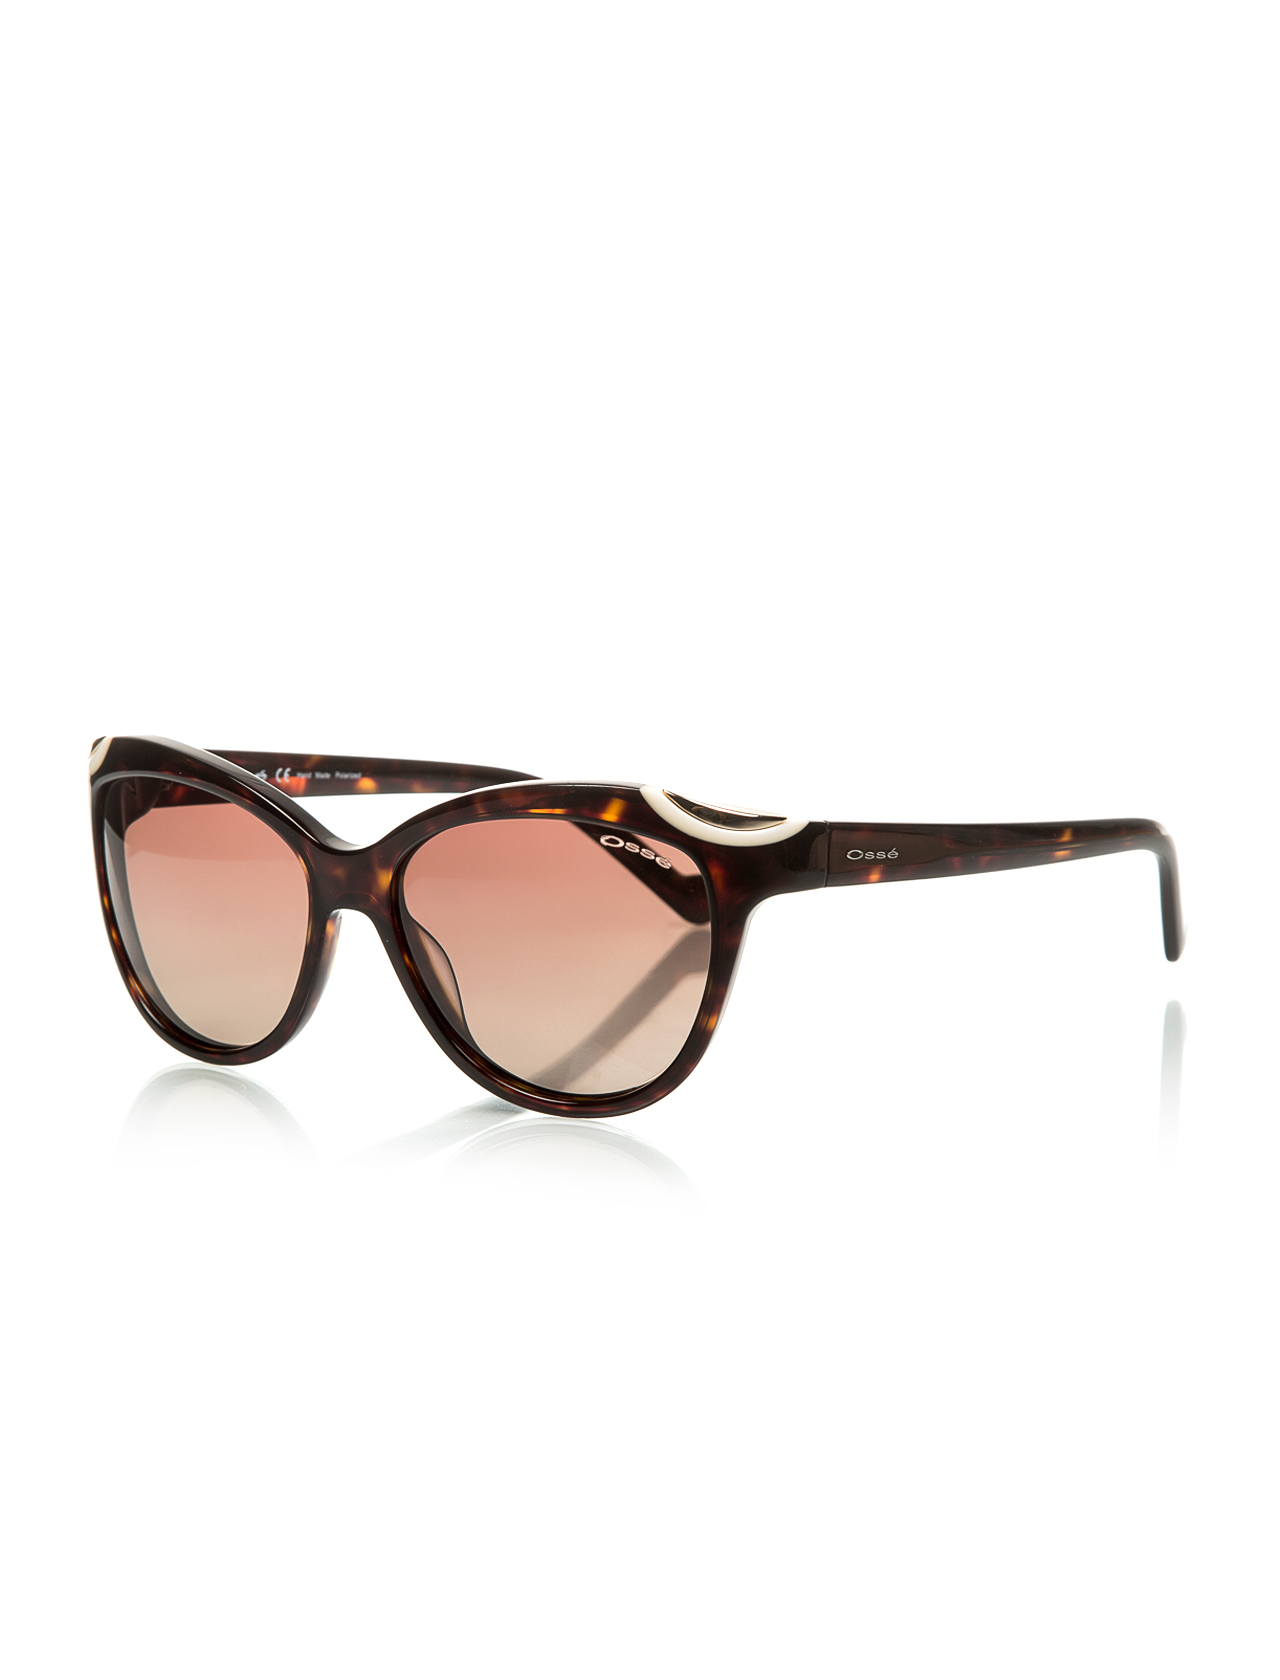 Women's sunglasses os 2151 02 bone Brown organic oval aval 57-16-140 osse